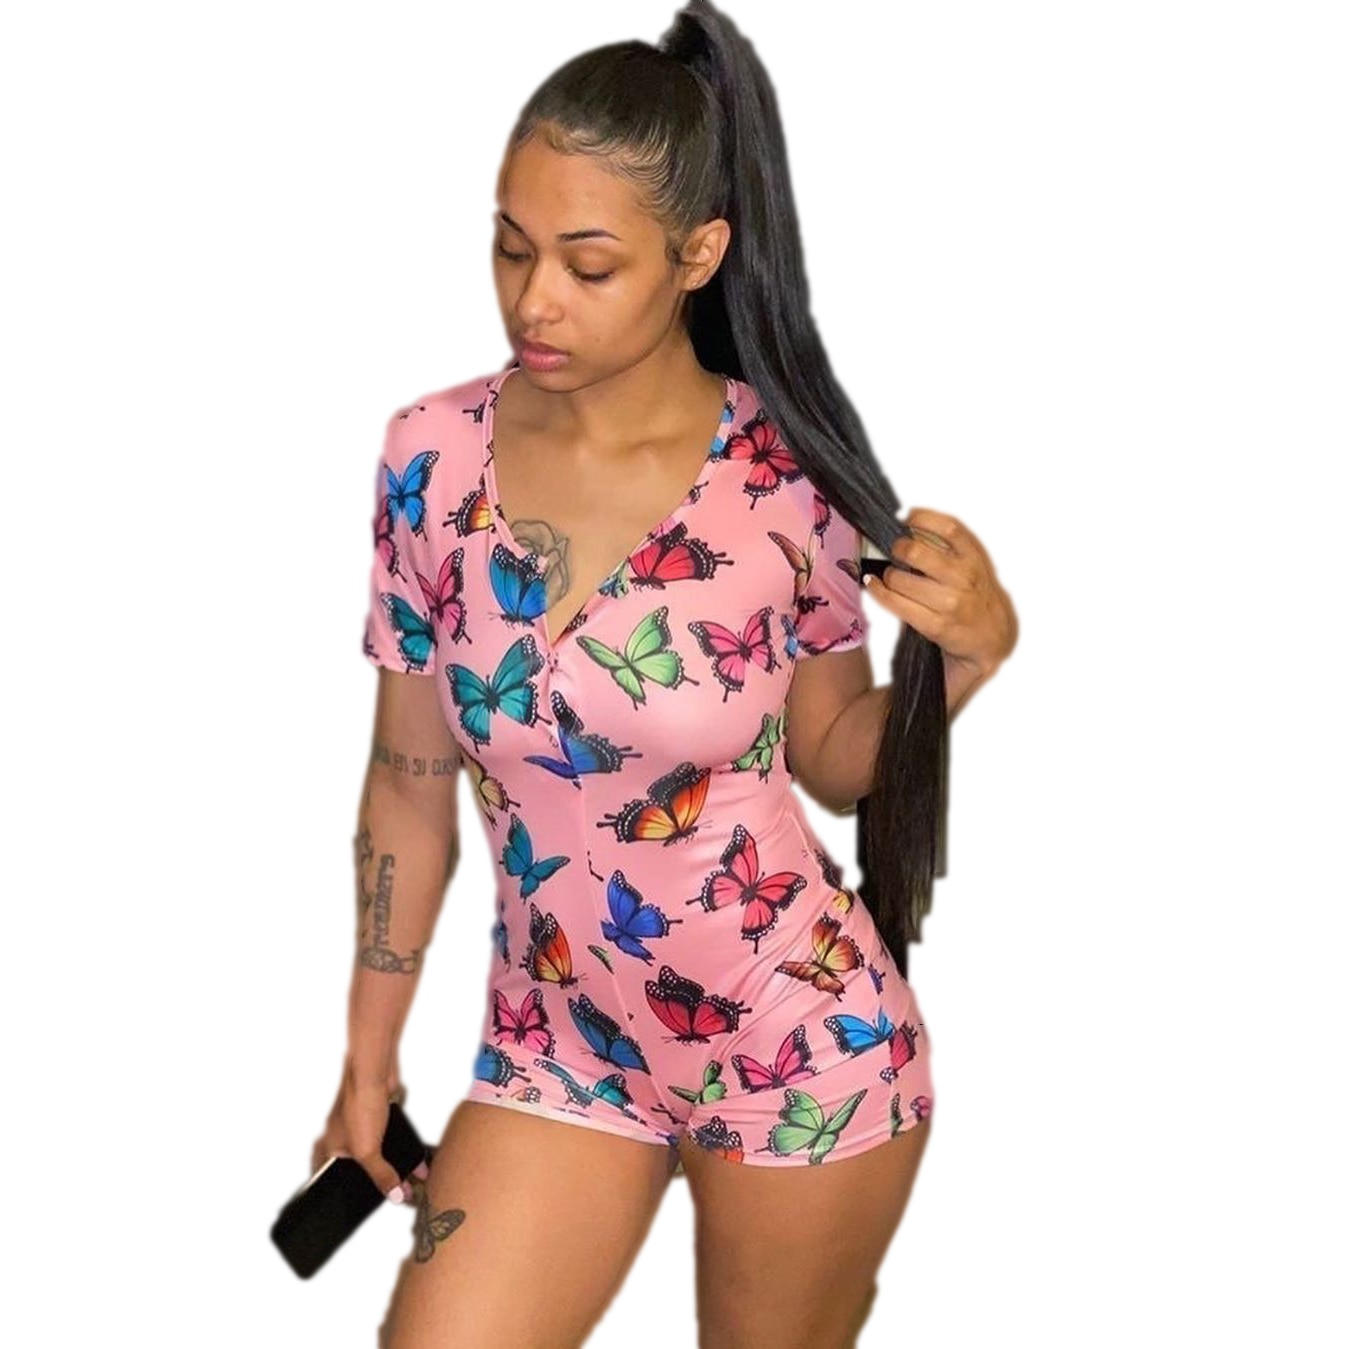 Women's Rompers Fashion Printed Short-Sleeved Tight Jumpsuit 2020 Summer New Jumpsuit European and American Clothing euro american simple round necked short sleeved chic port flavored elastic knitted dress with tight body and buttocks